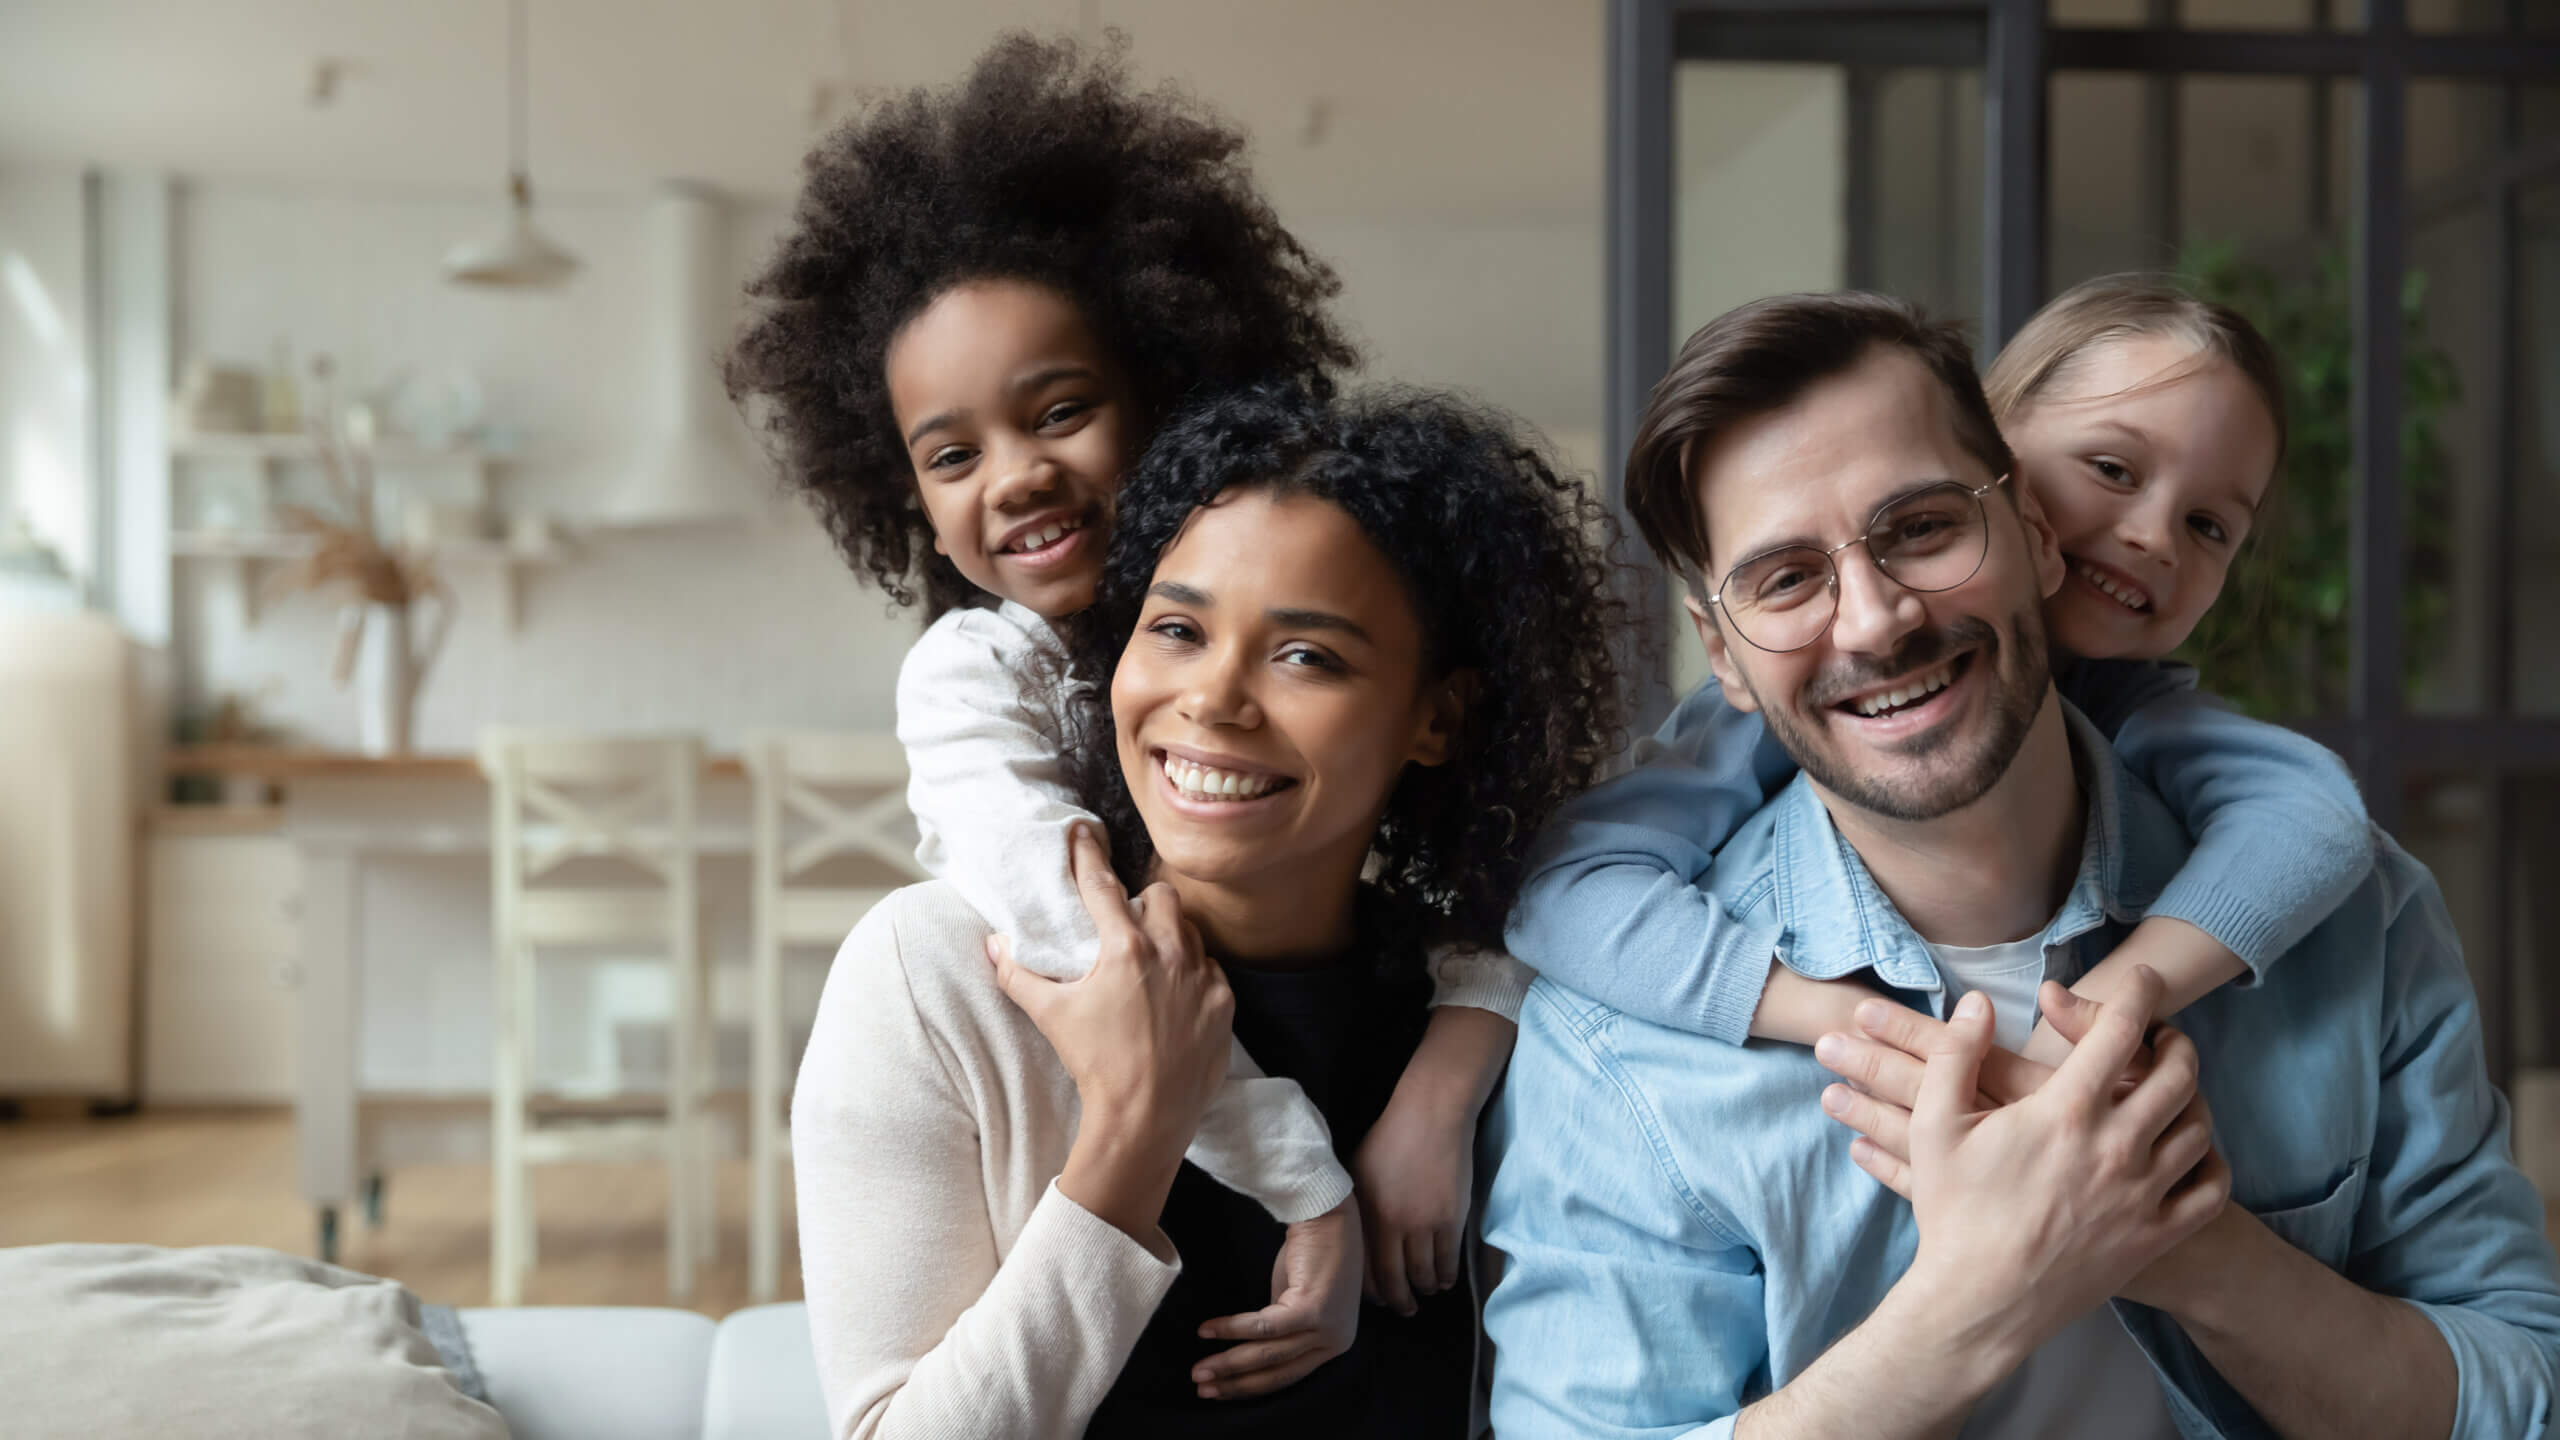 Portrait of happy multiracial couple enjoying sweet family moment with adorable little mixed raced daughters at home. Smiling cute small stepsisters cuddling cheerful parents, looking at camera.